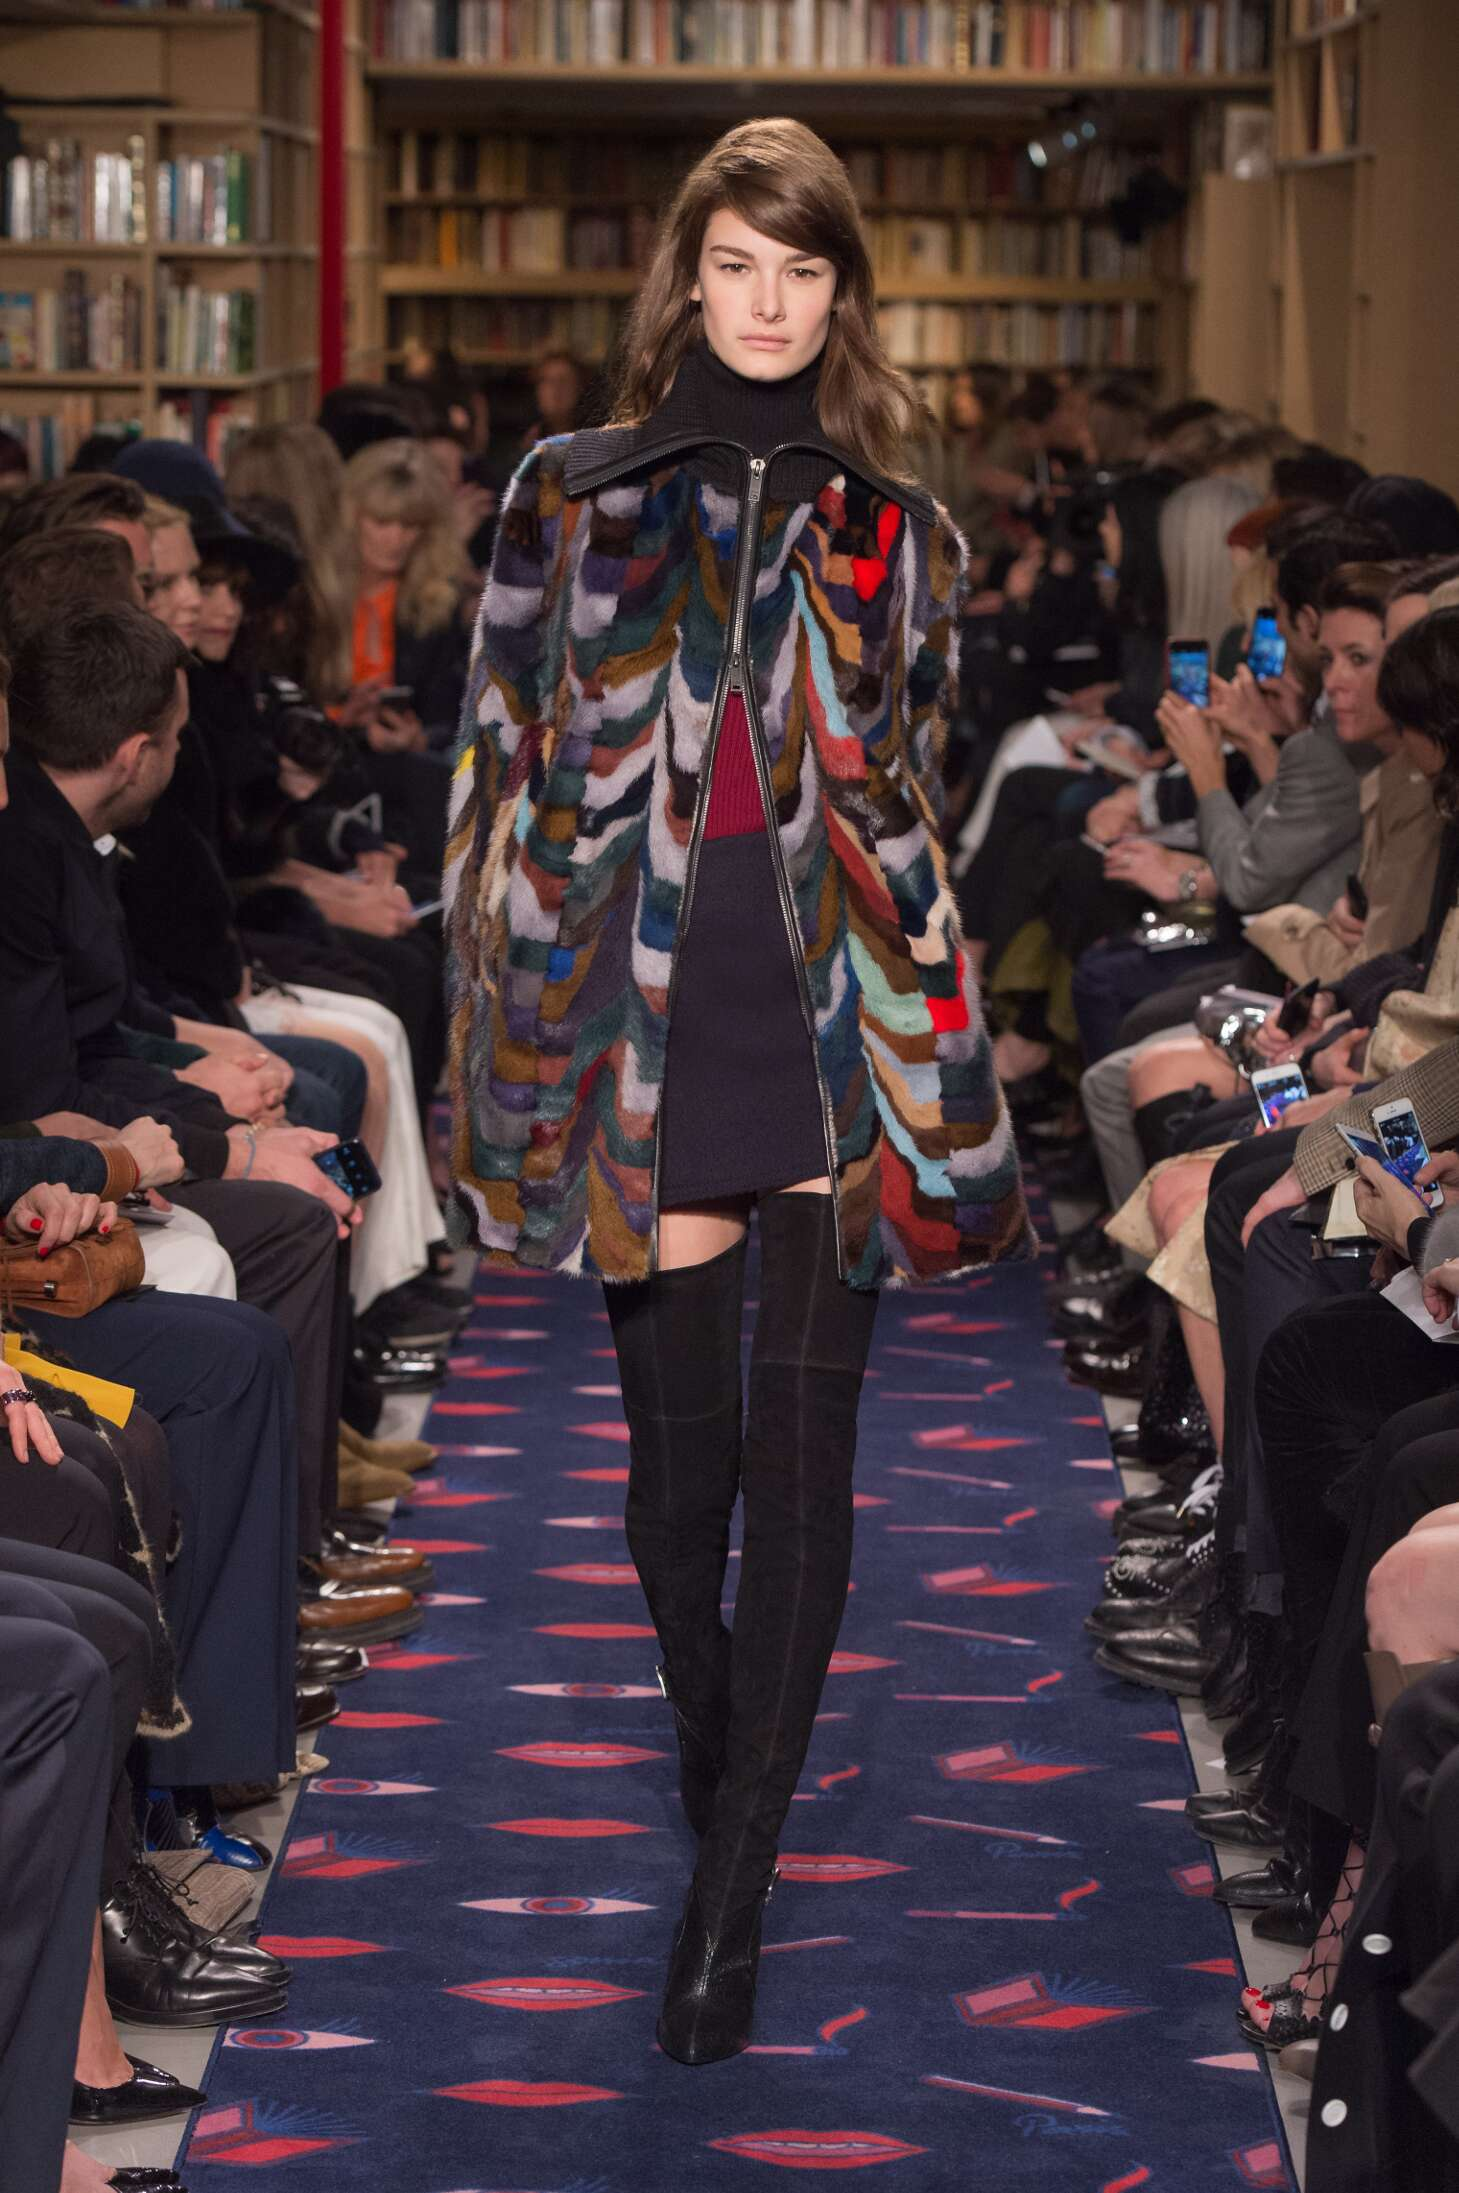 2015 Fashion Woman Model Sonia Rykiel Collection Catwalk